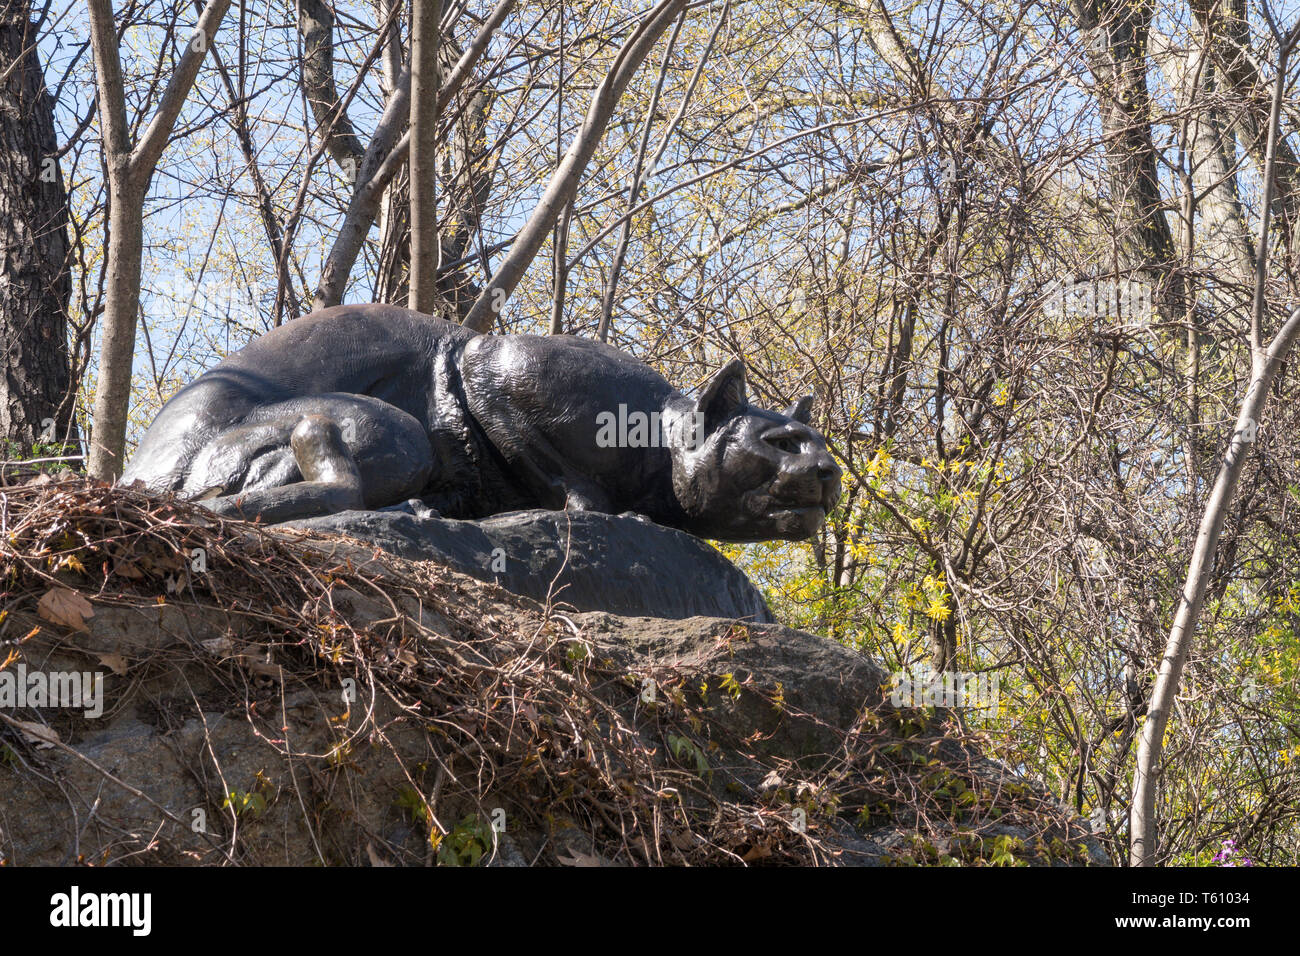 """""""Still Hunt"""" Cougar Sculpture, East Drive, """"Cat Hill"""", Central Park, NYC Stock Photo"""